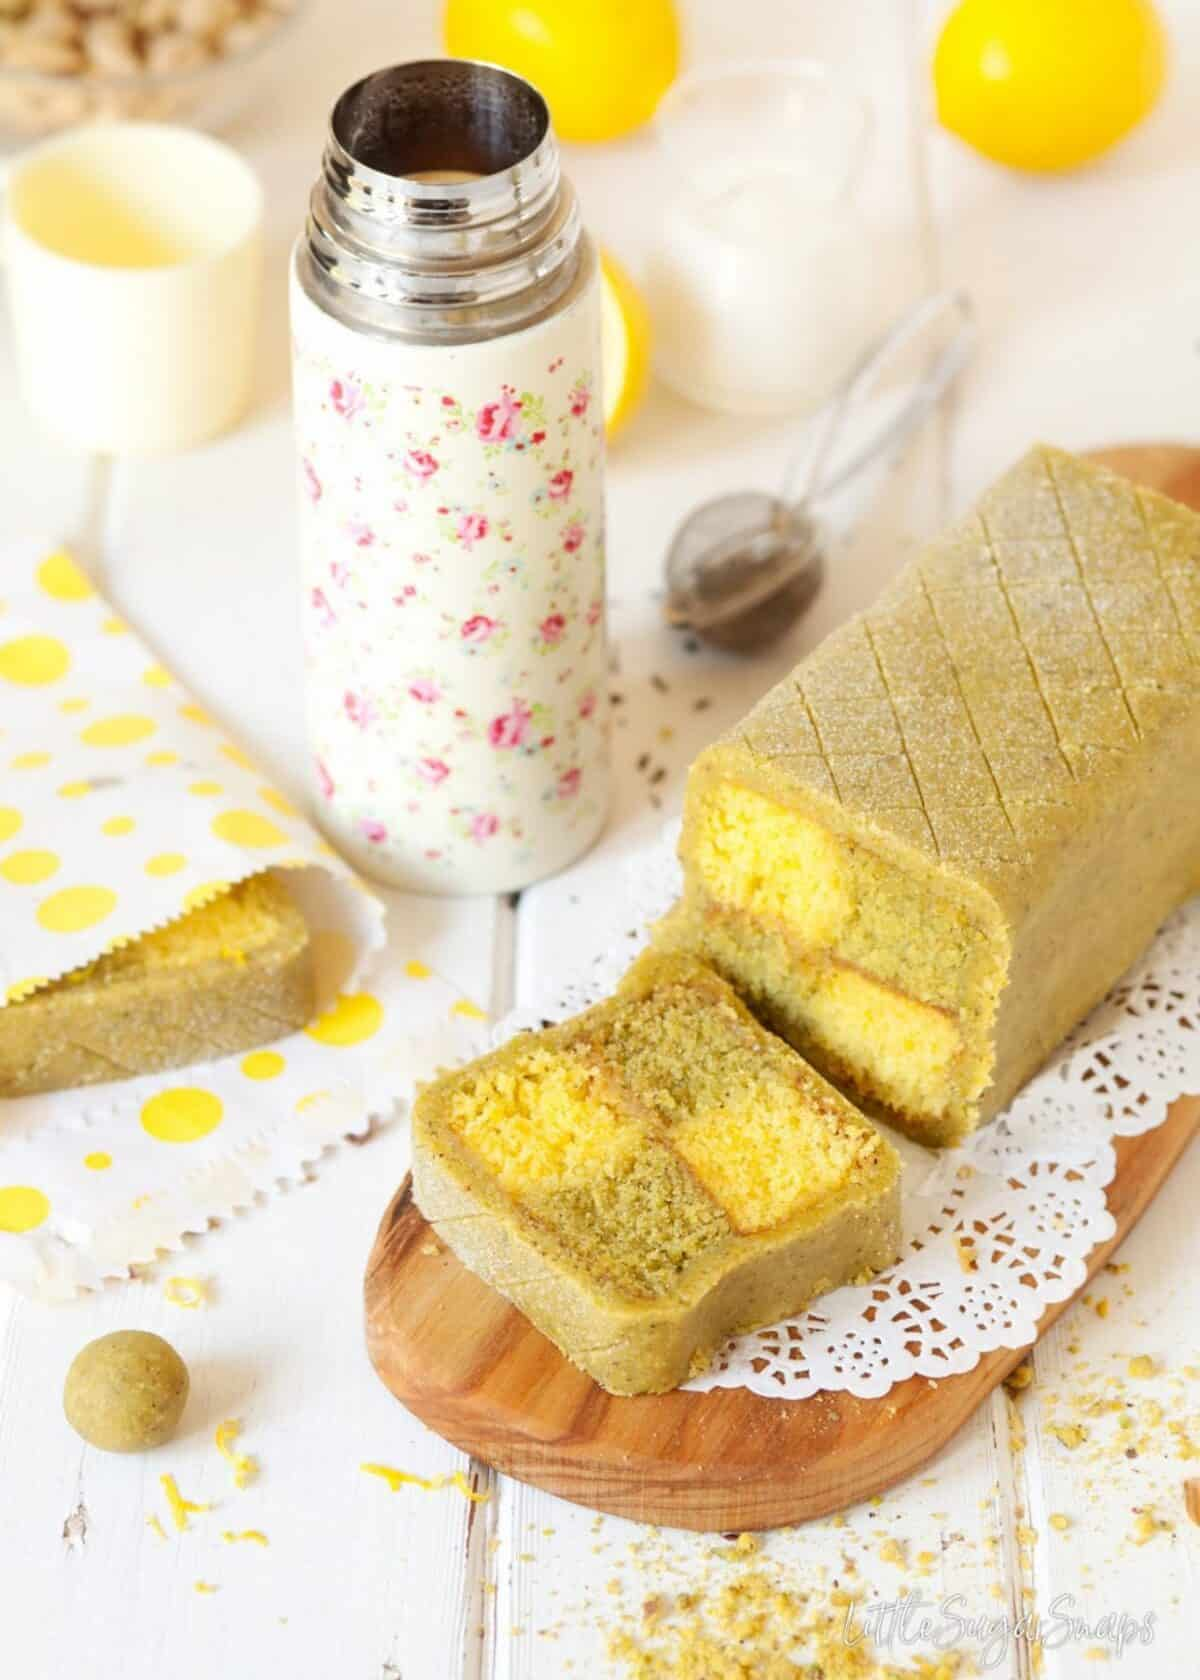 Pistachio and Lemon Battenberg Cake with a slice cut from it.